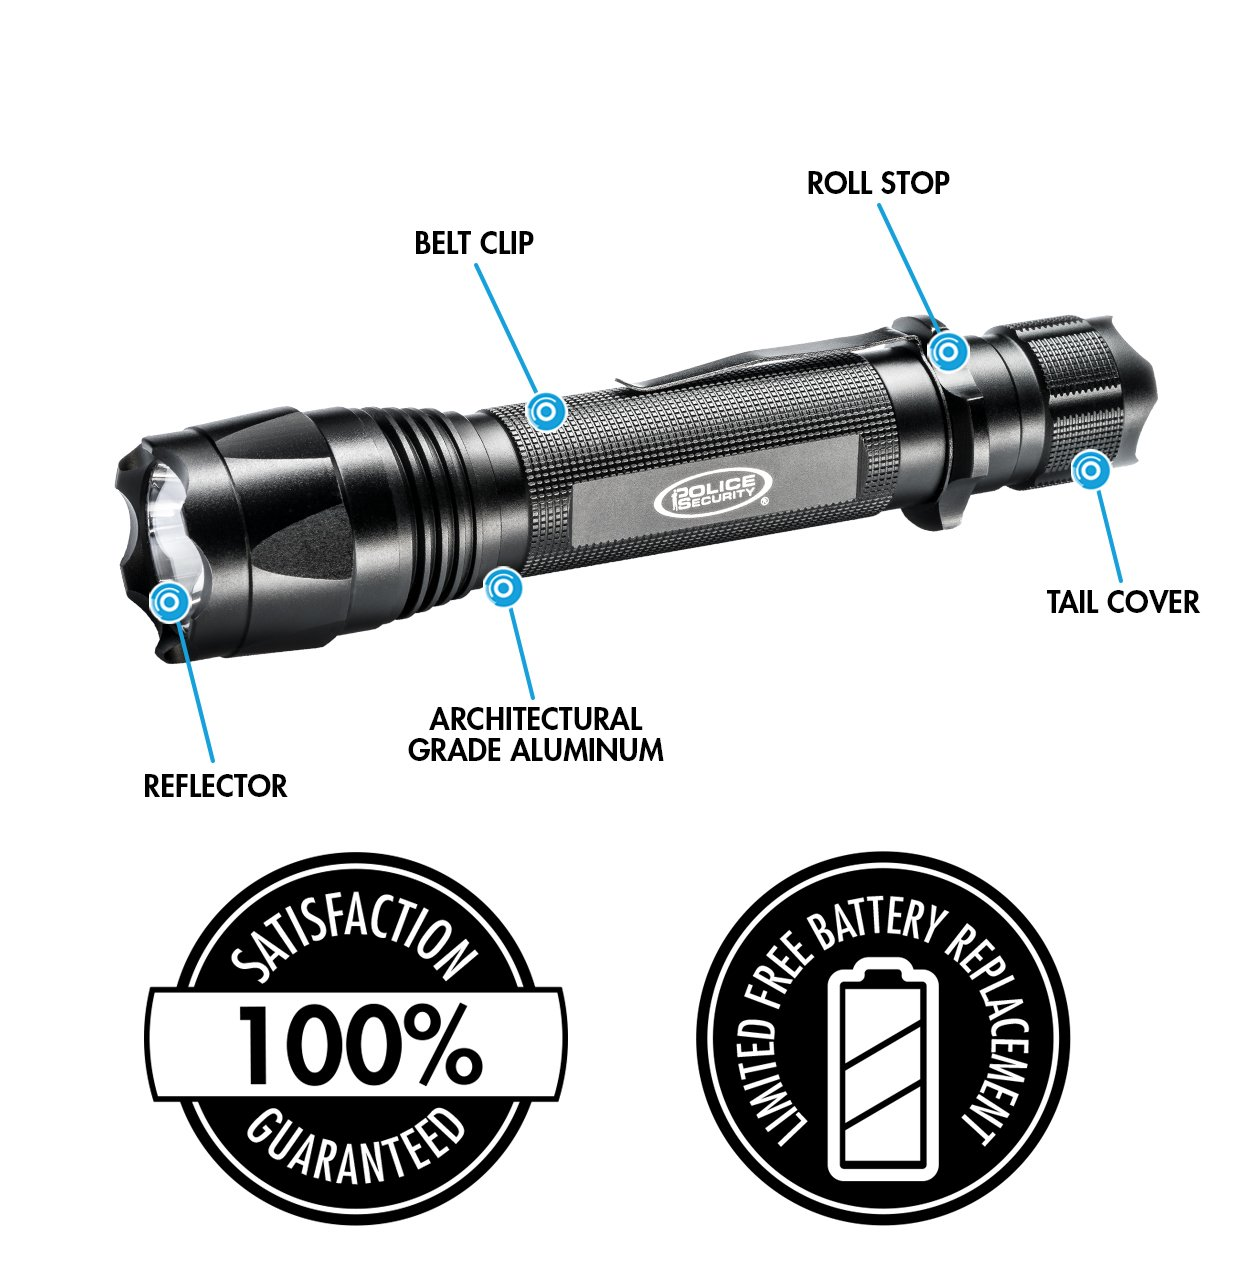 Police Security Knightstick 2AA Ultra Bright Flashlight - Cree LED - 190 Lumen - Tactical - Water Resistant - High/Low/Flash